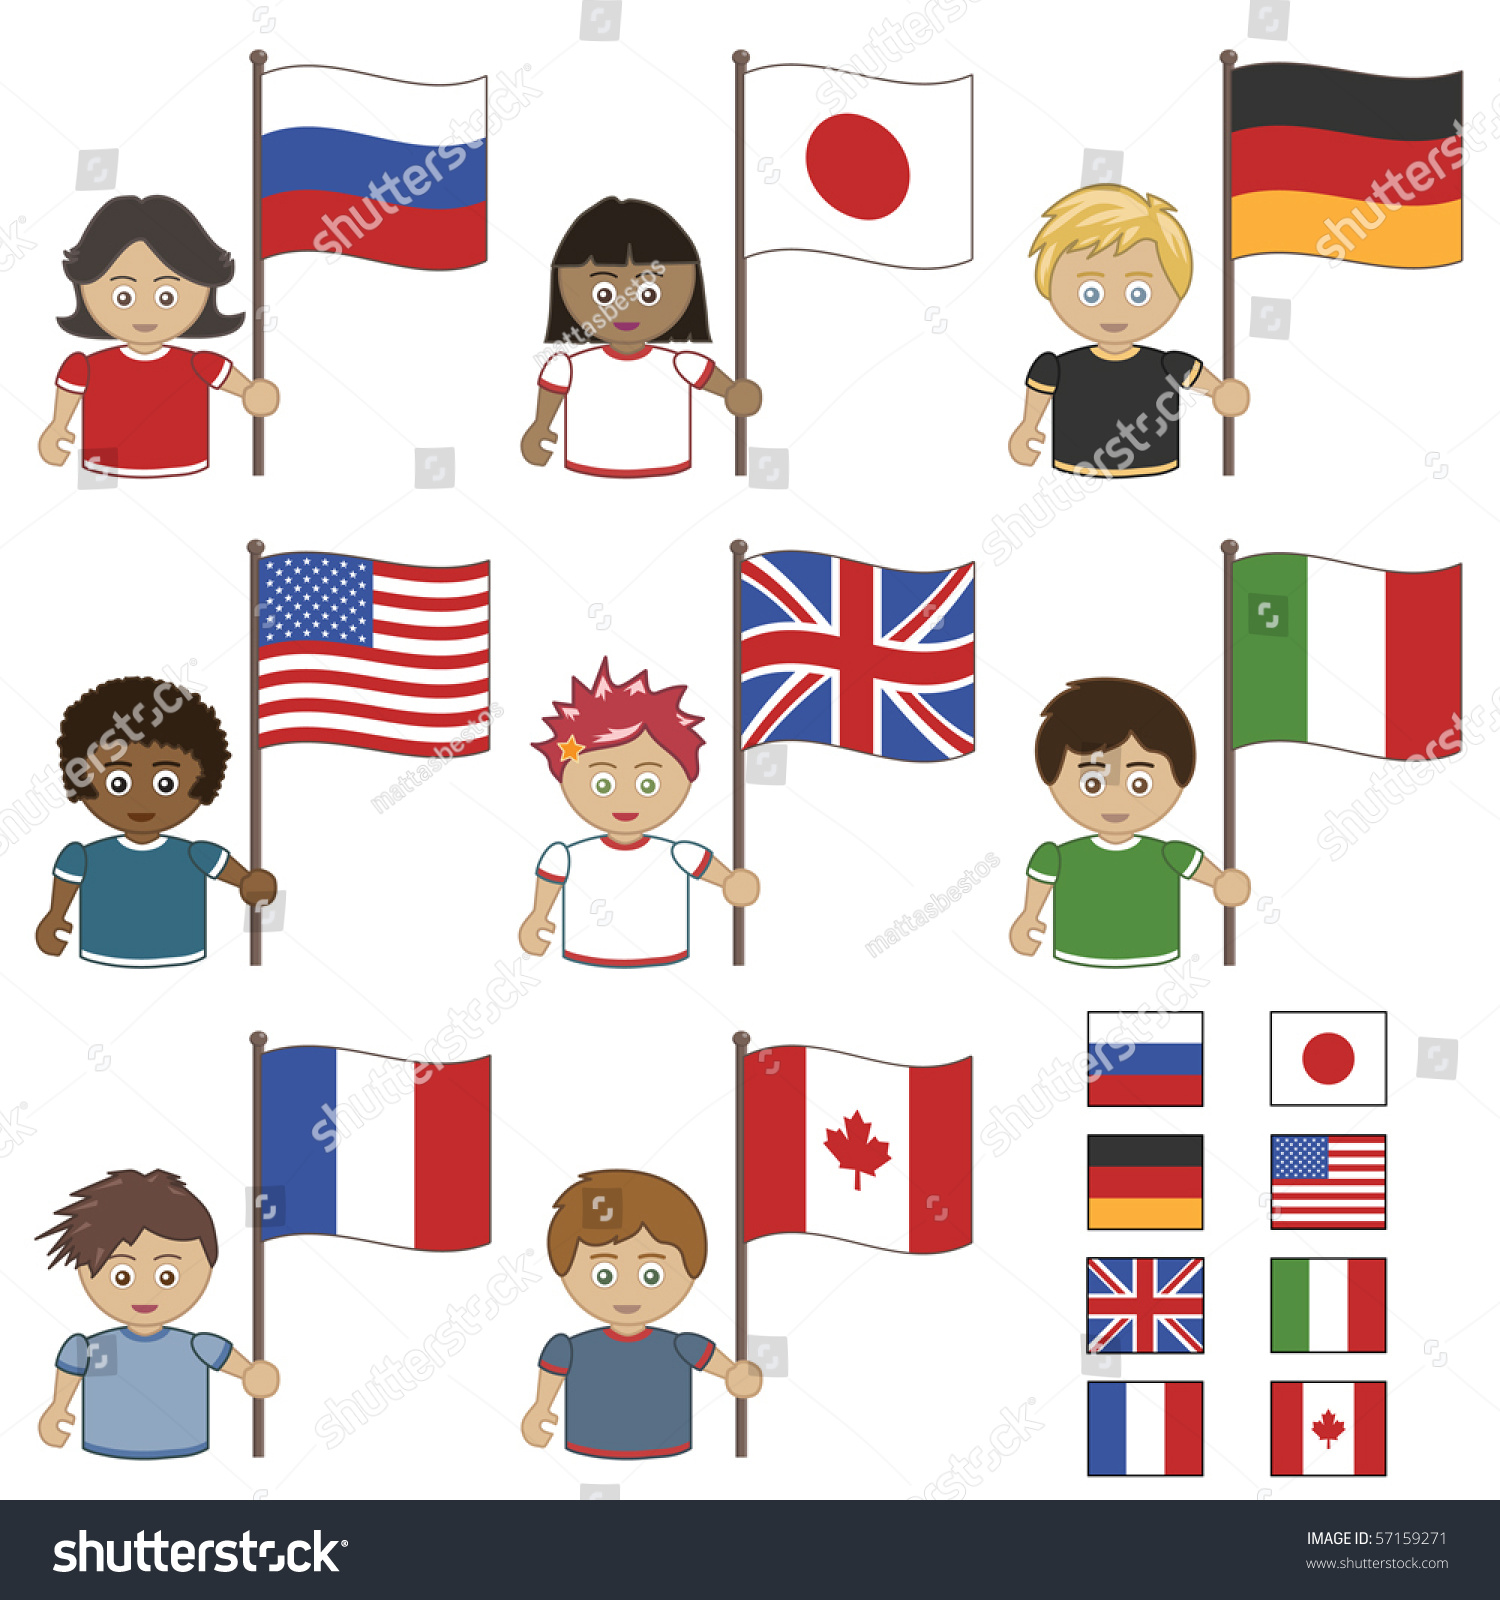 how to call united kingdom from canada